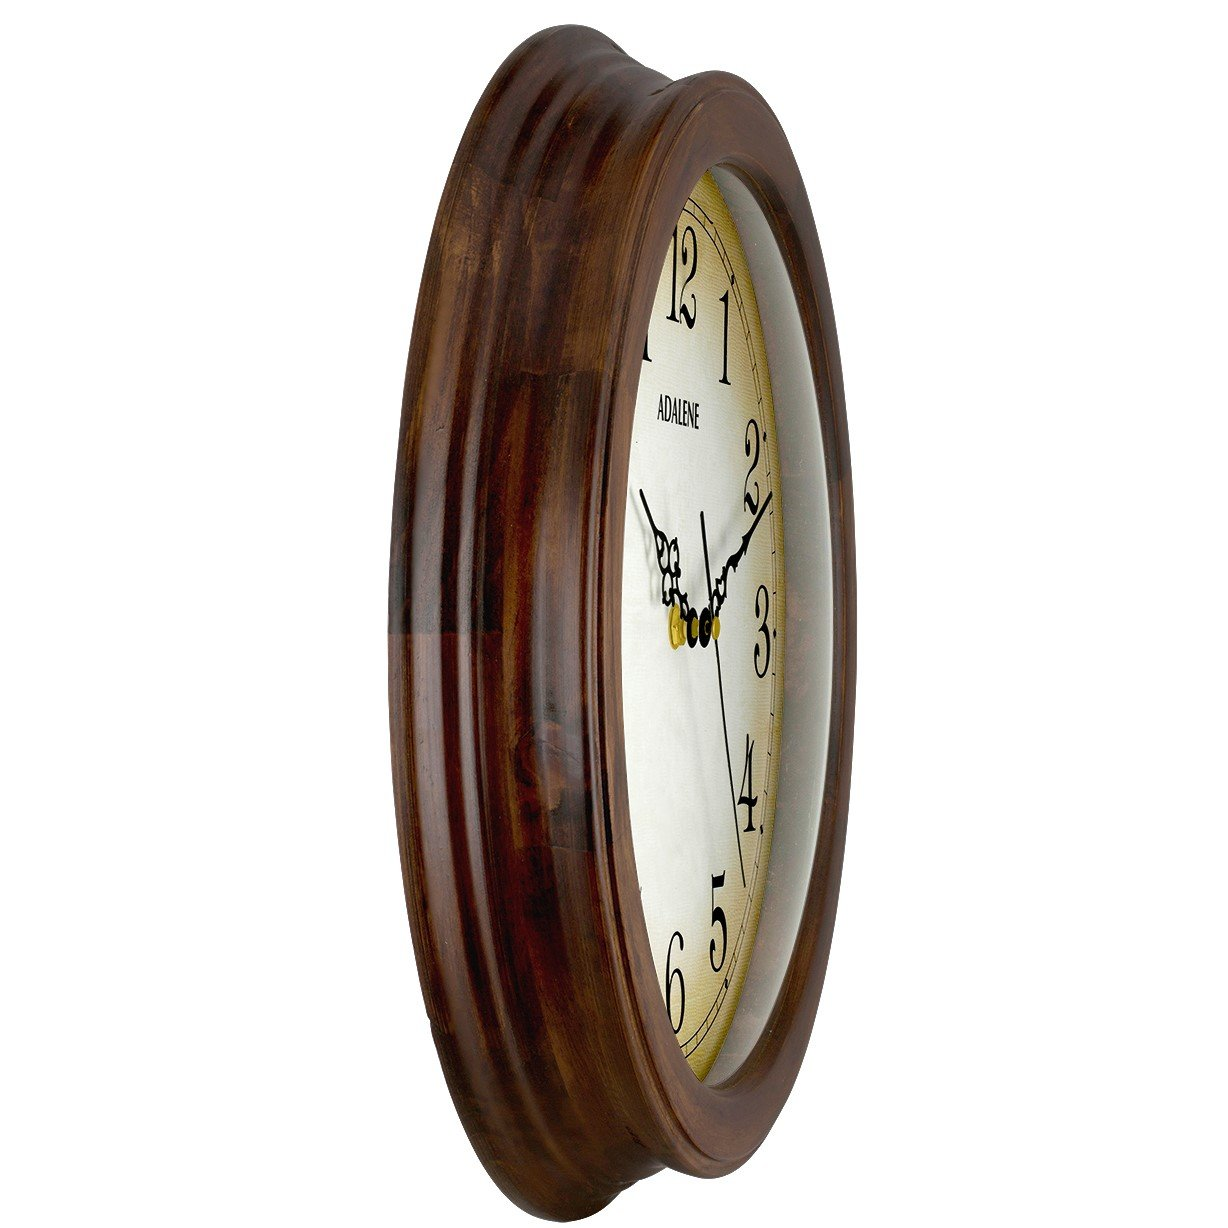 Adalene Wall Clocks Large Decorative For Living Room Decor 14 Inch Wooden Frame - Quiet Battery Operated Wood Wall Clock Silent Non Ticking Analog Quartz Movement, Large Numbers, For Kitchen, Bedrooms